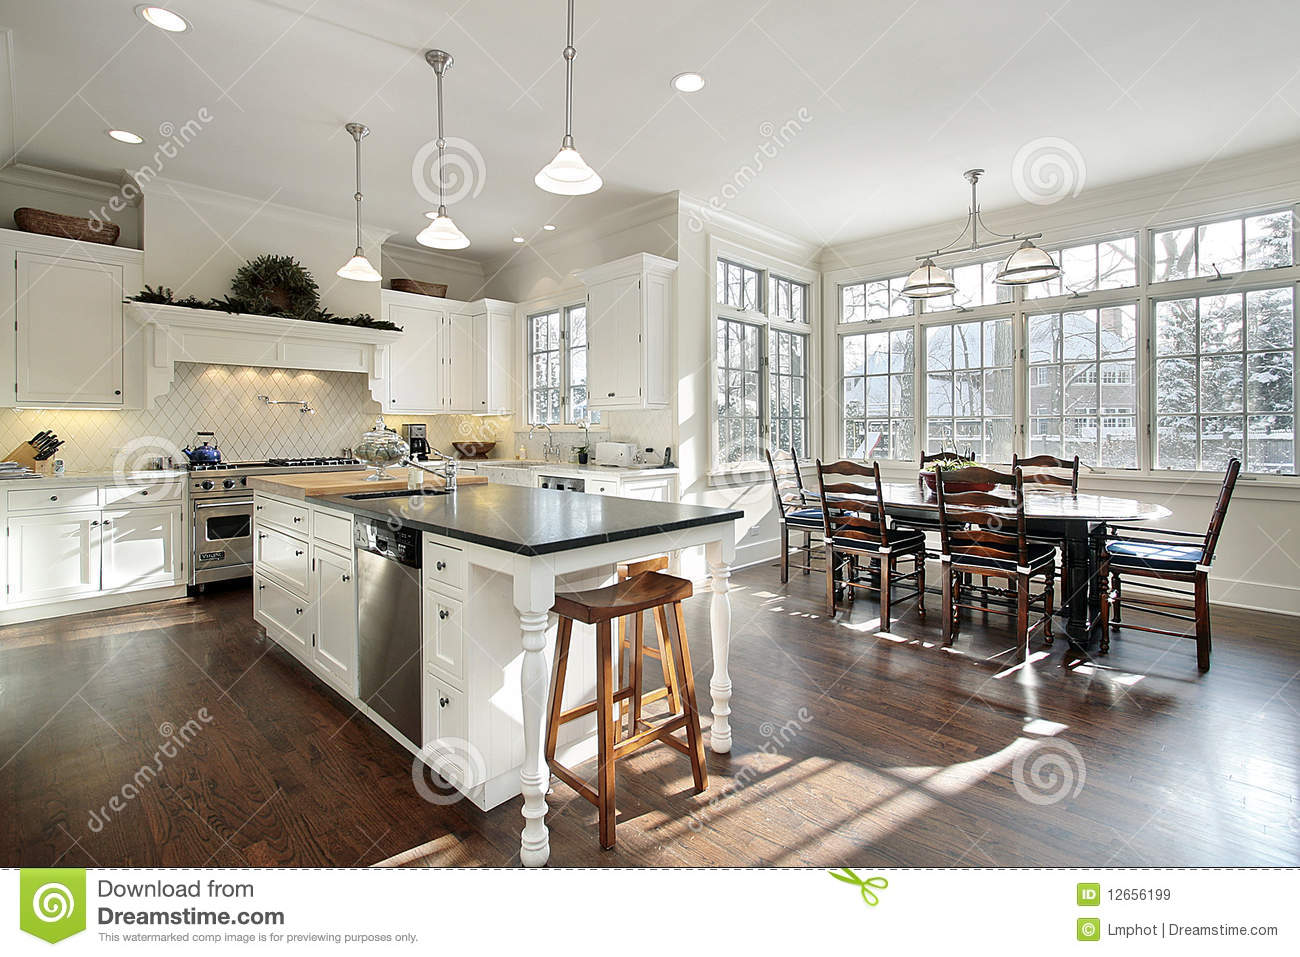 kitchen with eating area royalty free stock images image